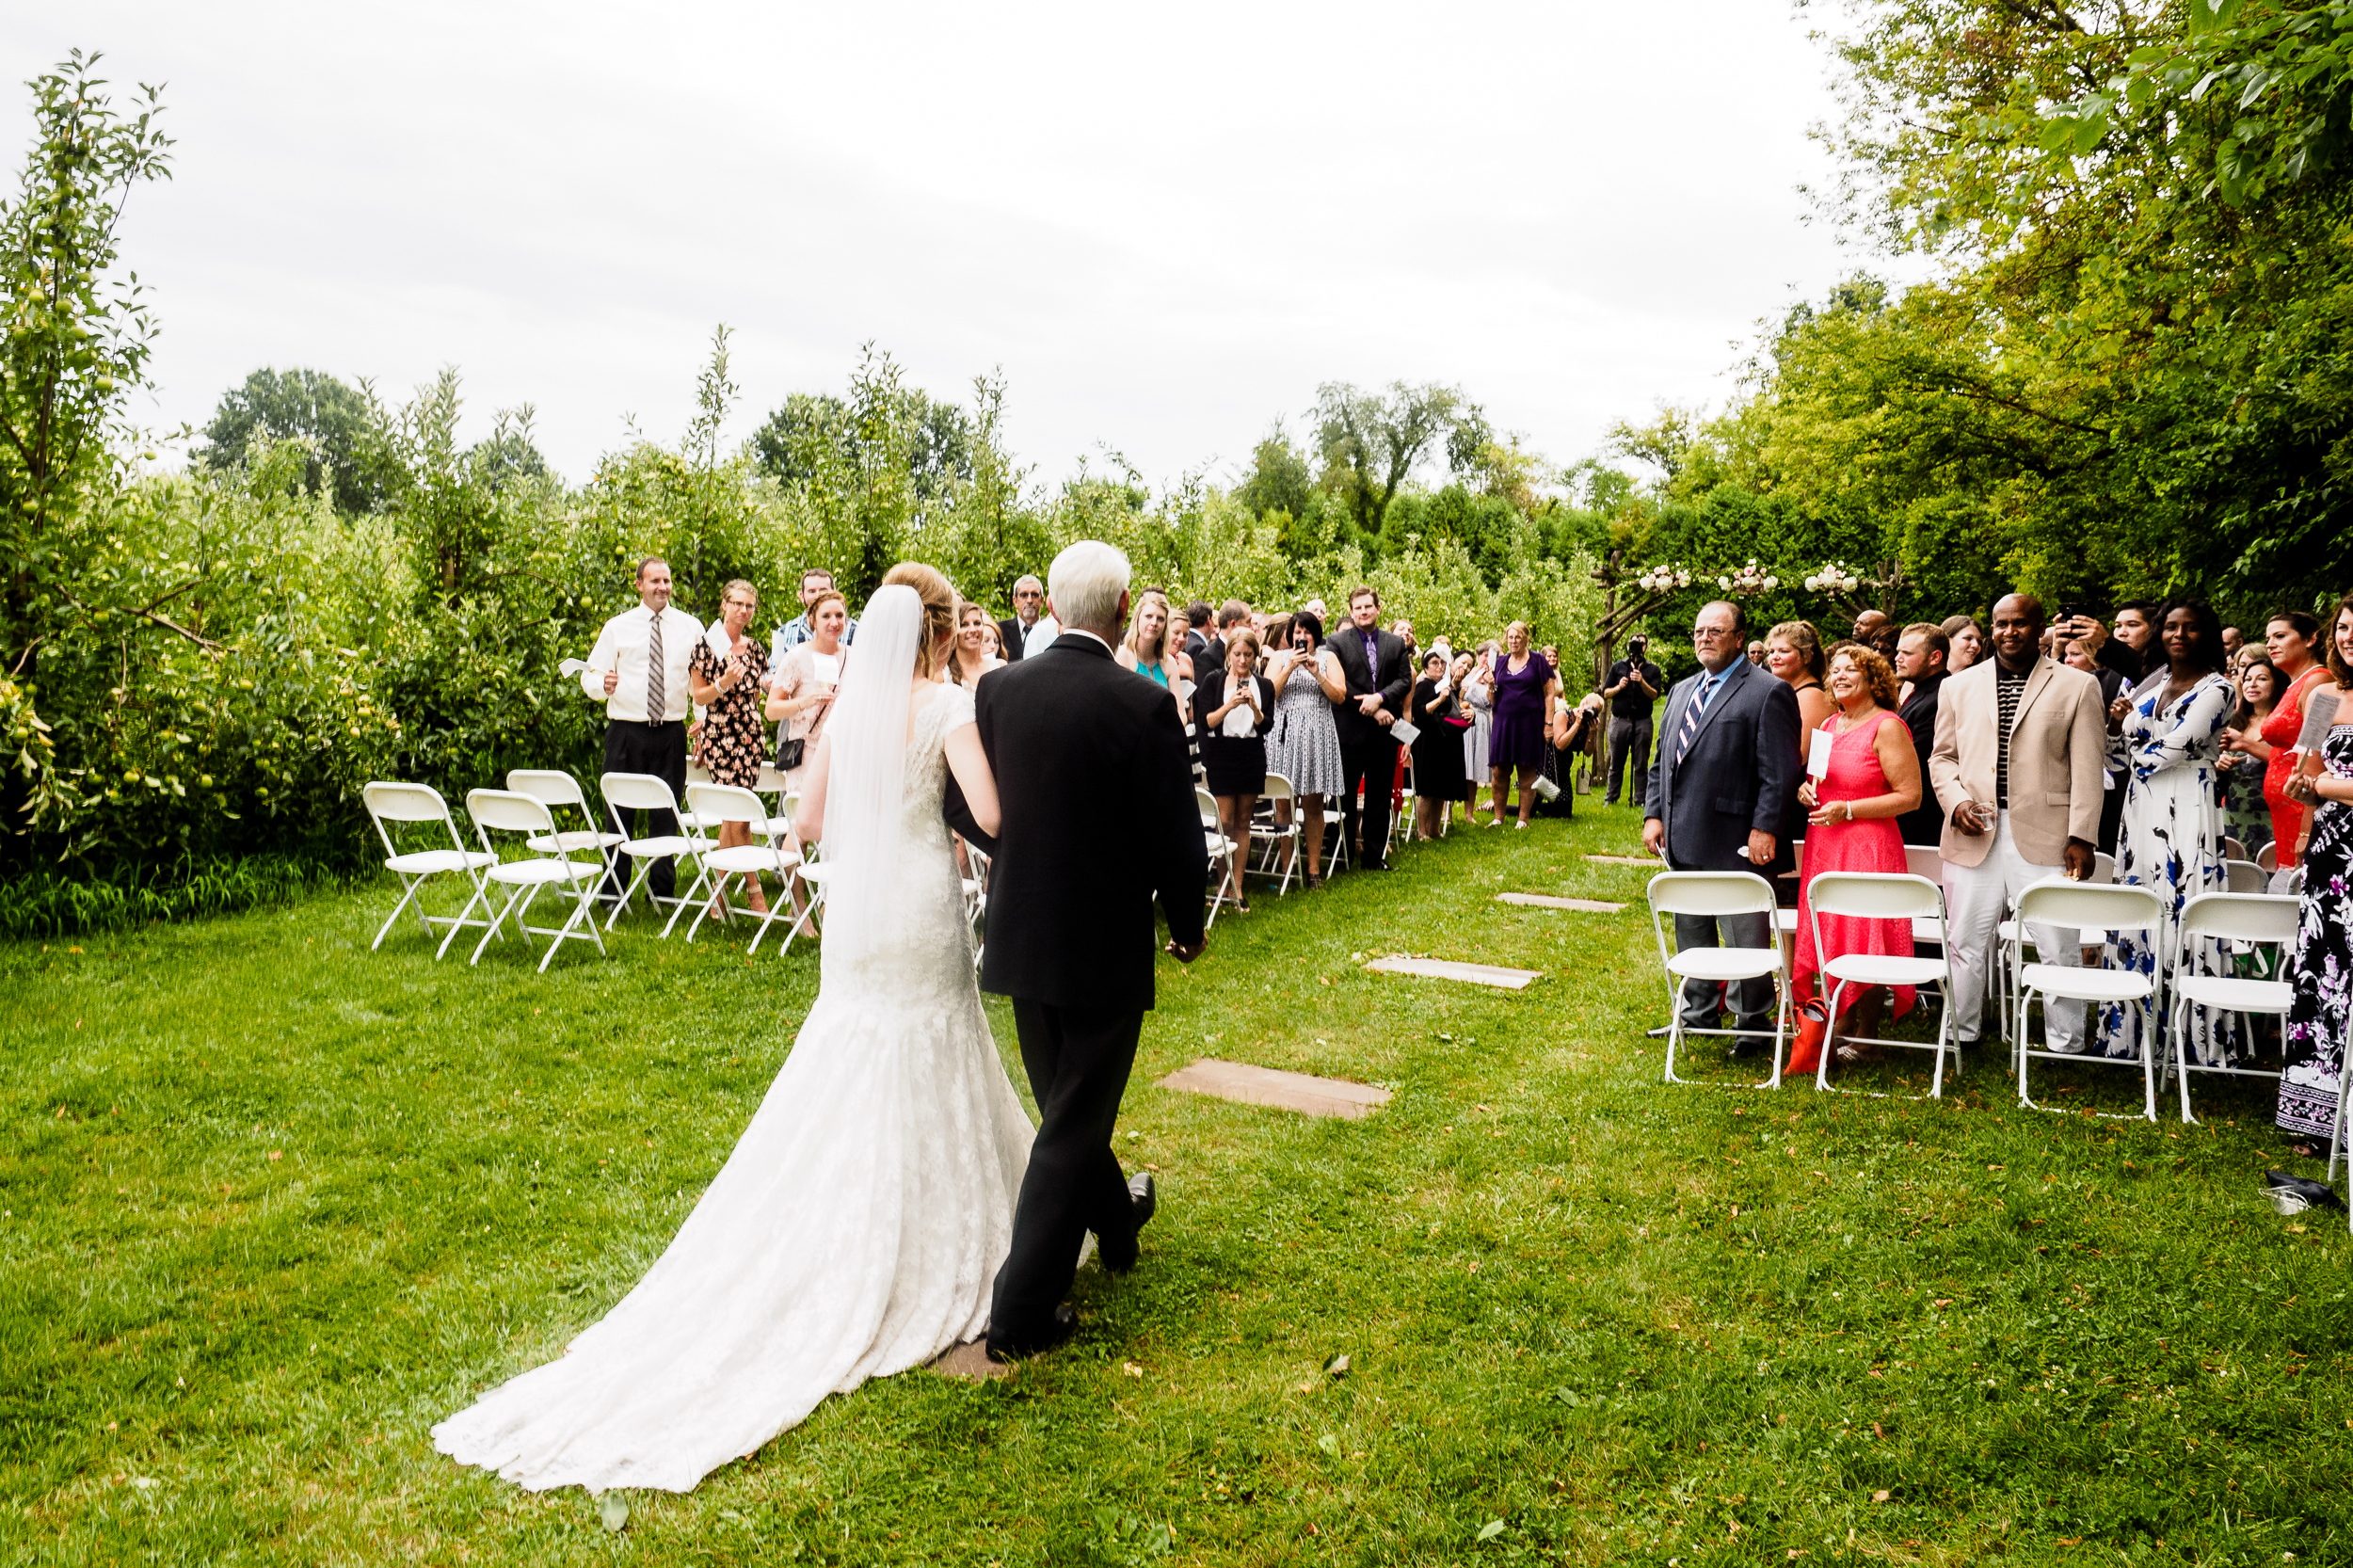 county-line-orchard-wedding-venue-photo0036.jpg